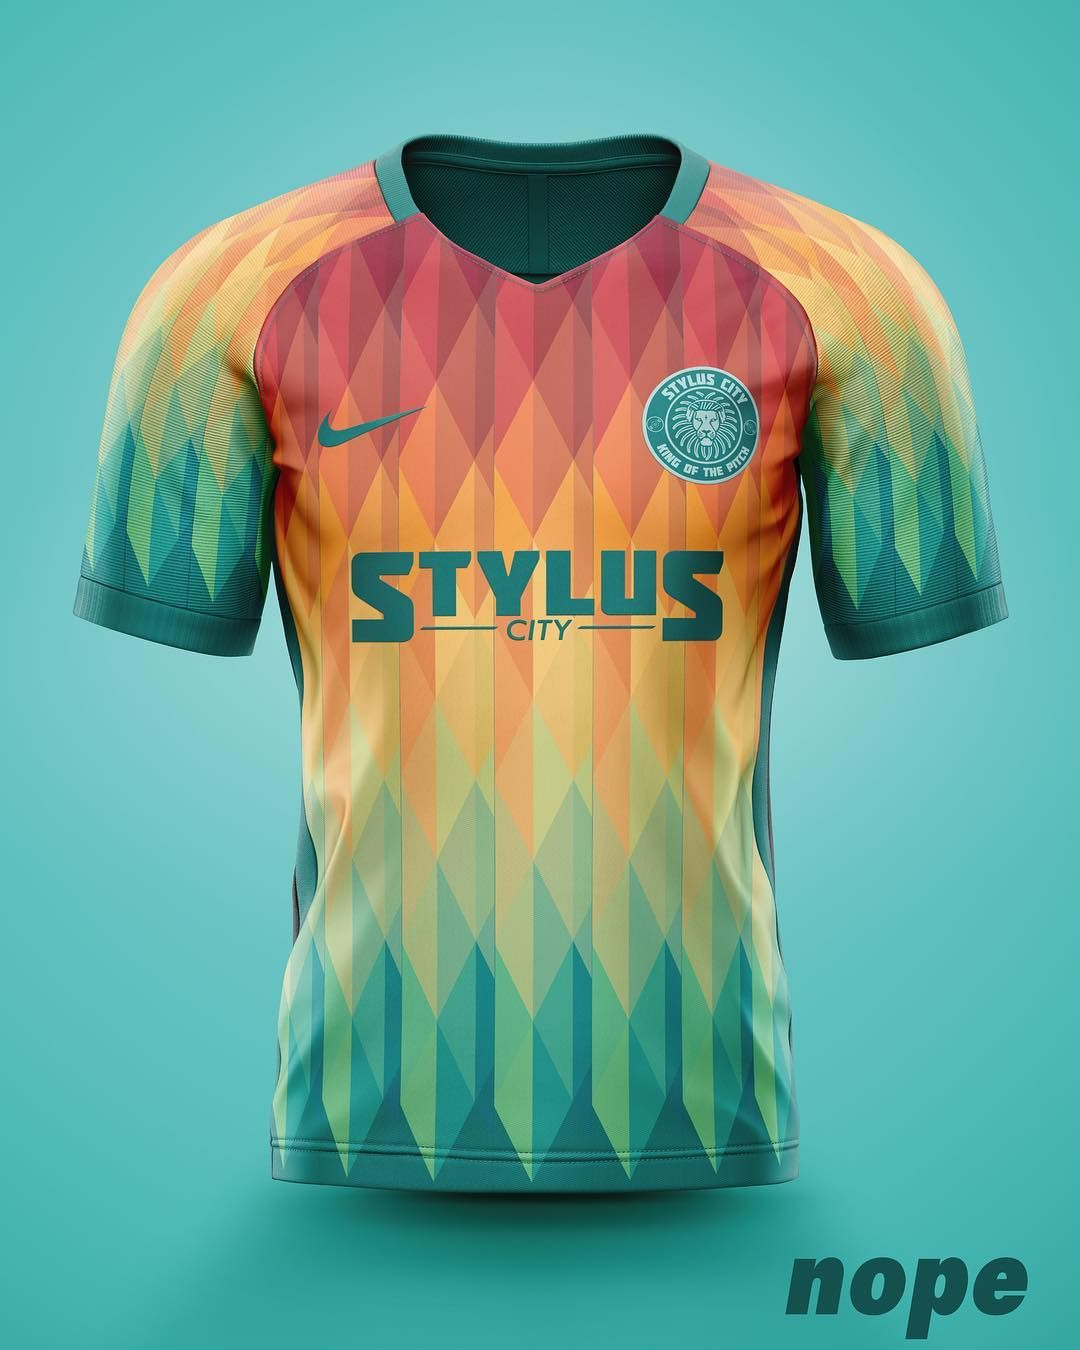 Download Design 3 From The Styluscity Concepts Series What Do You Think Nope Nopedesign Concept Football Drumnbass Music S In 2020 Sportswear Fashion Shirts